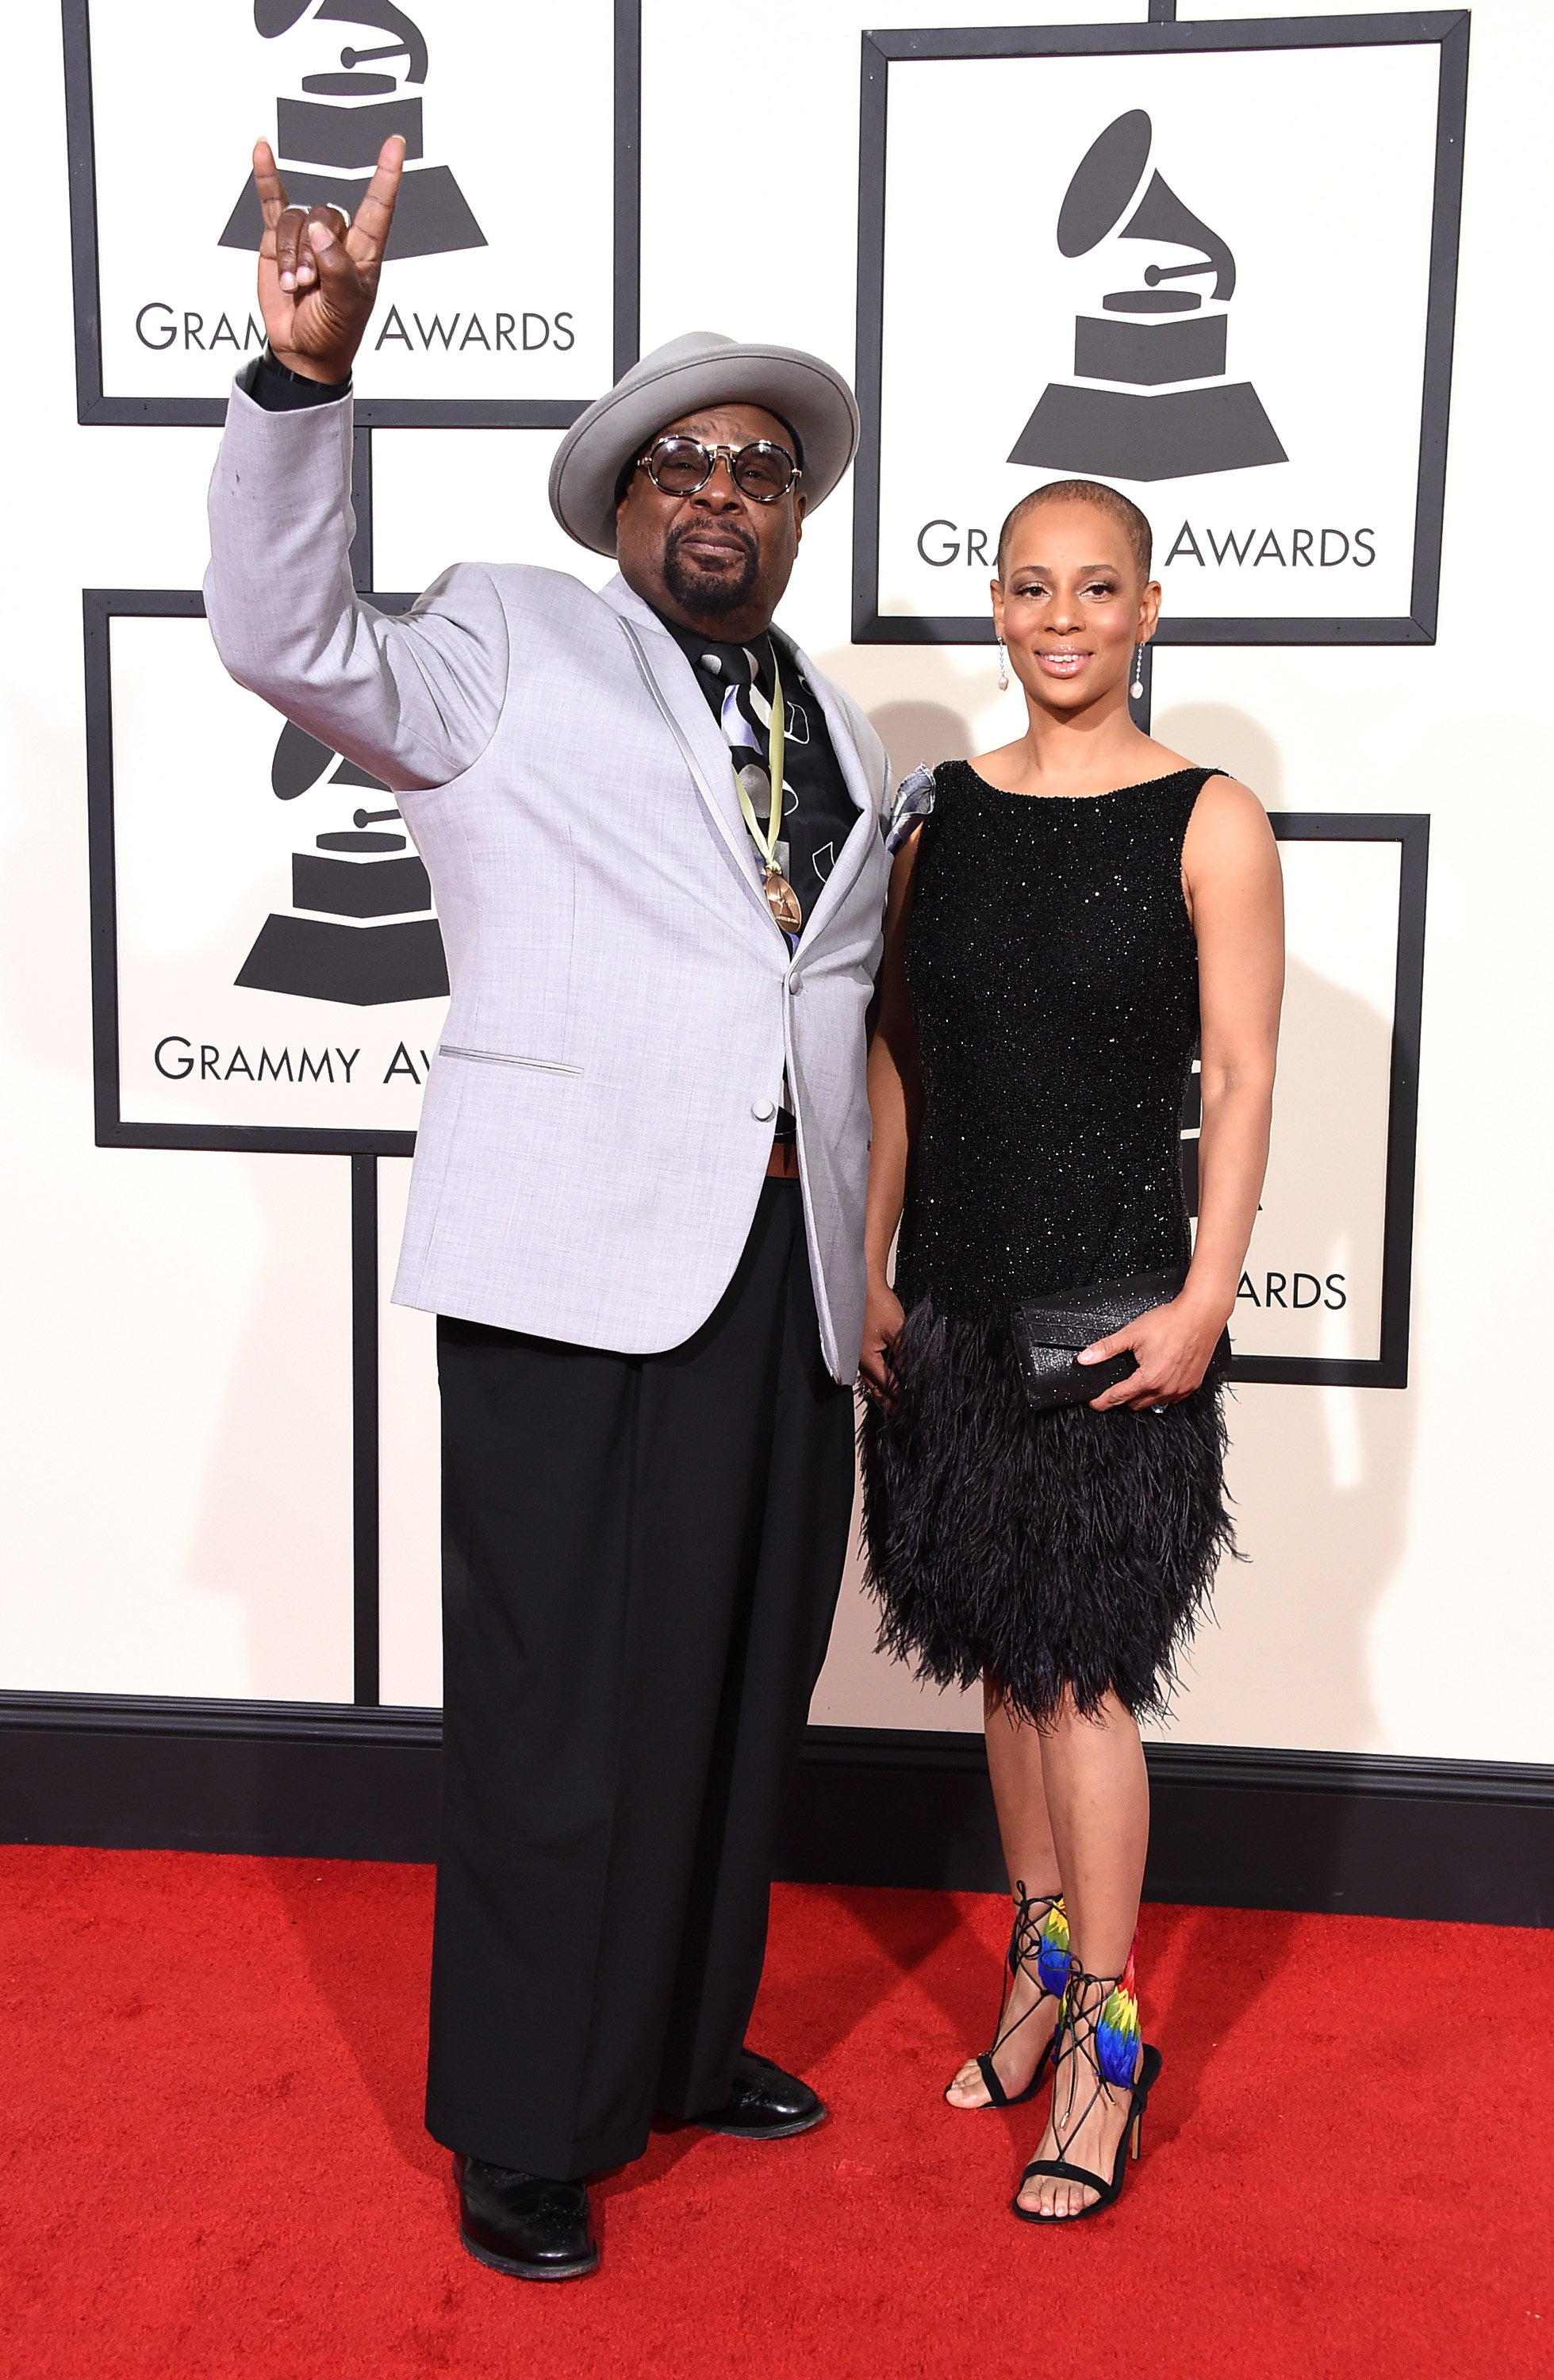 George Clinton, left, attends the 58th GRAMMY Awards at Staples Center on Feb. 15, 2016 in Los Angeles.